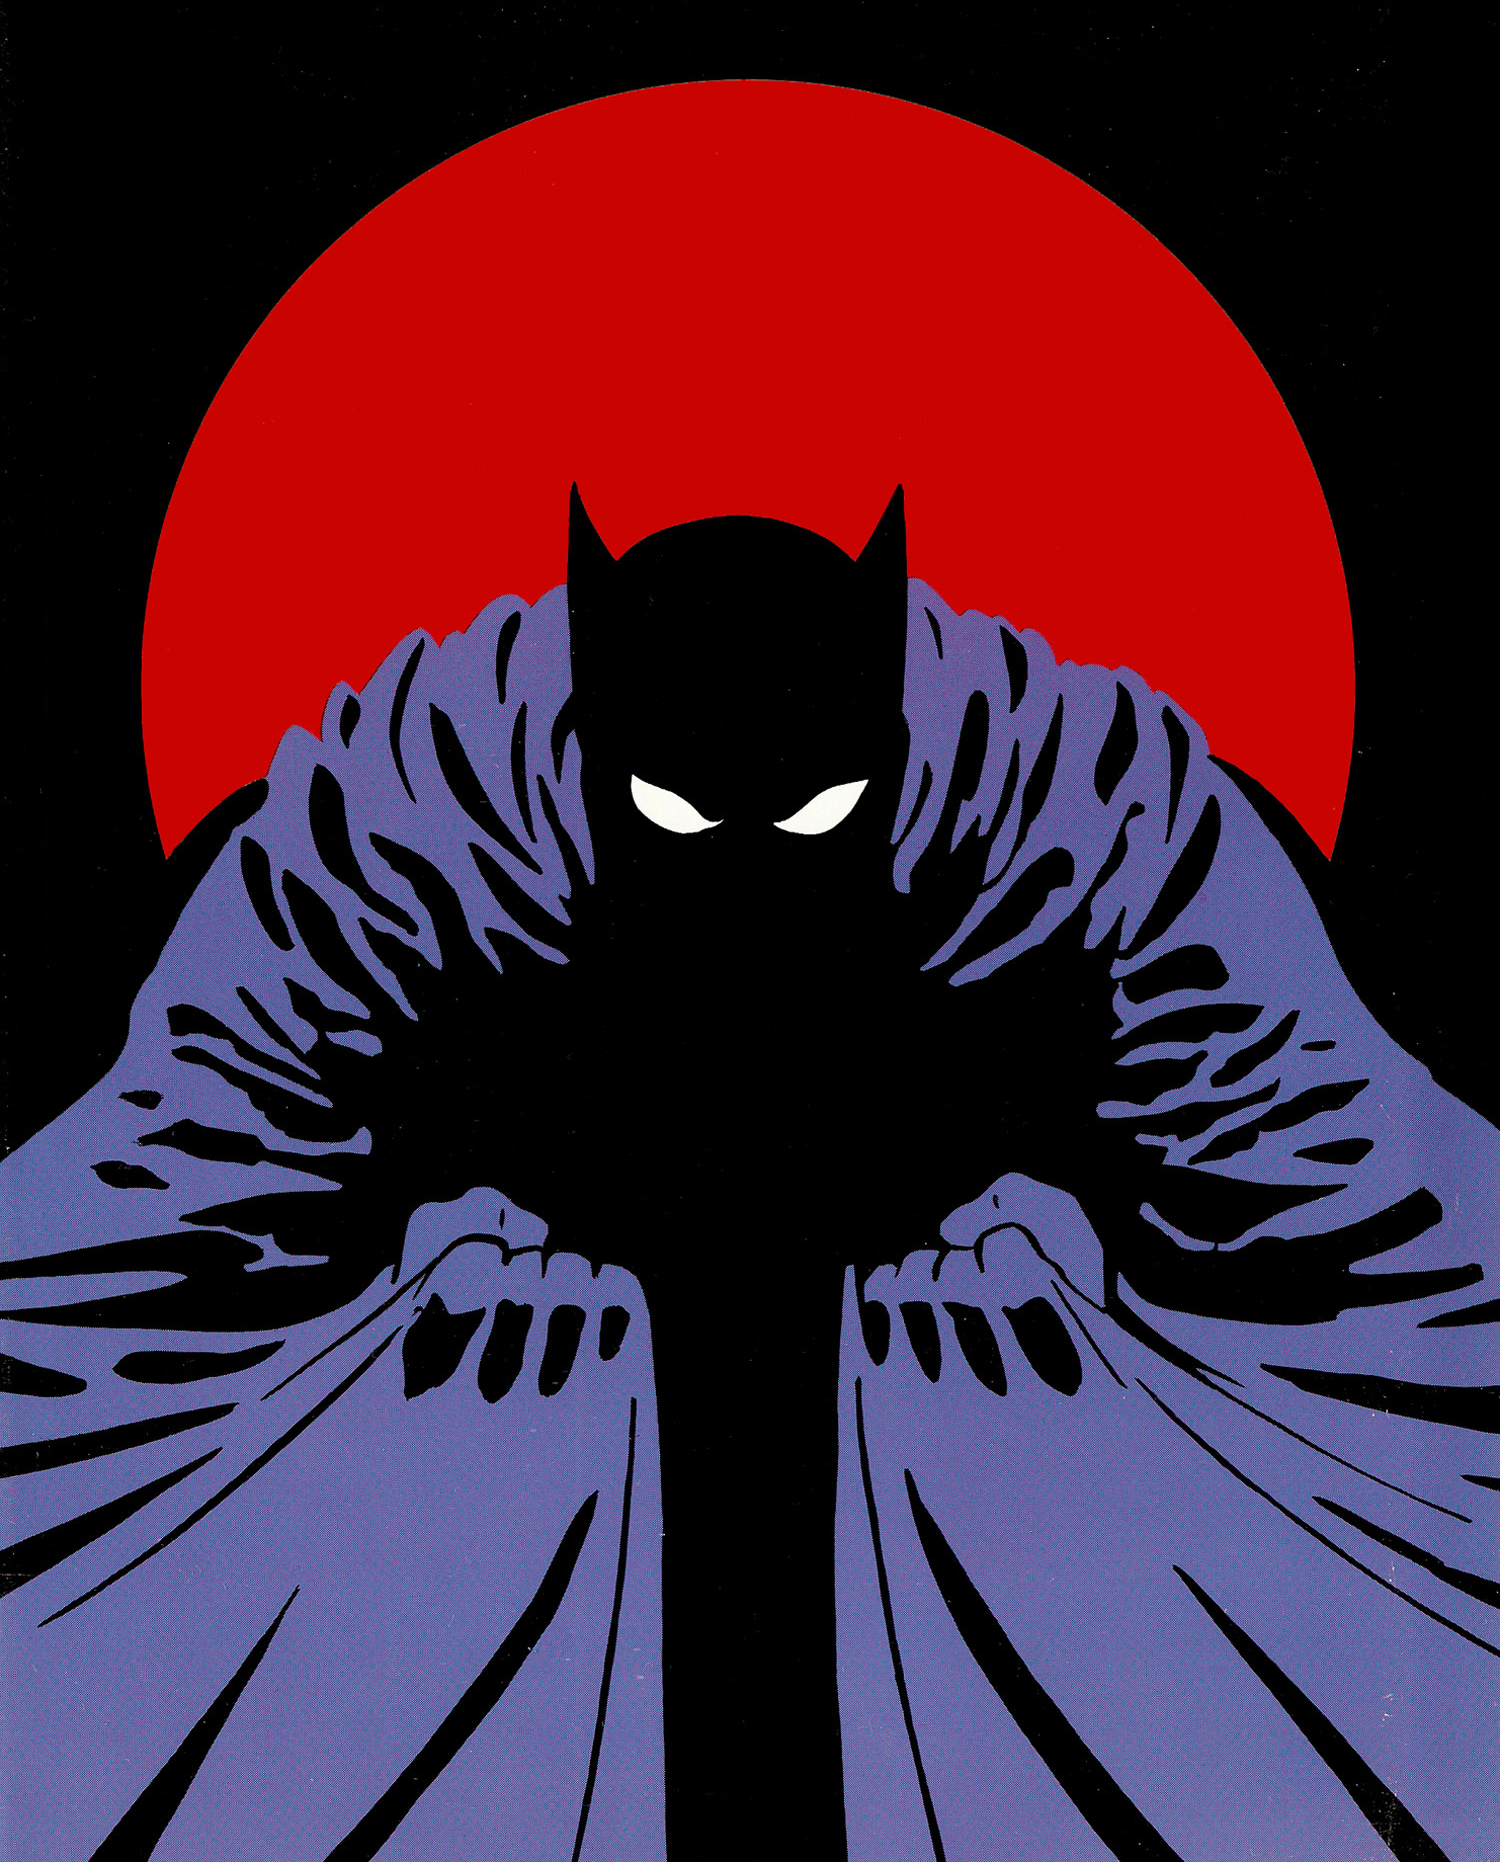 https://vignette.wikia.nocookie.net/batman/images/4/41/1988.png/revision/latest?cb=20140721021045